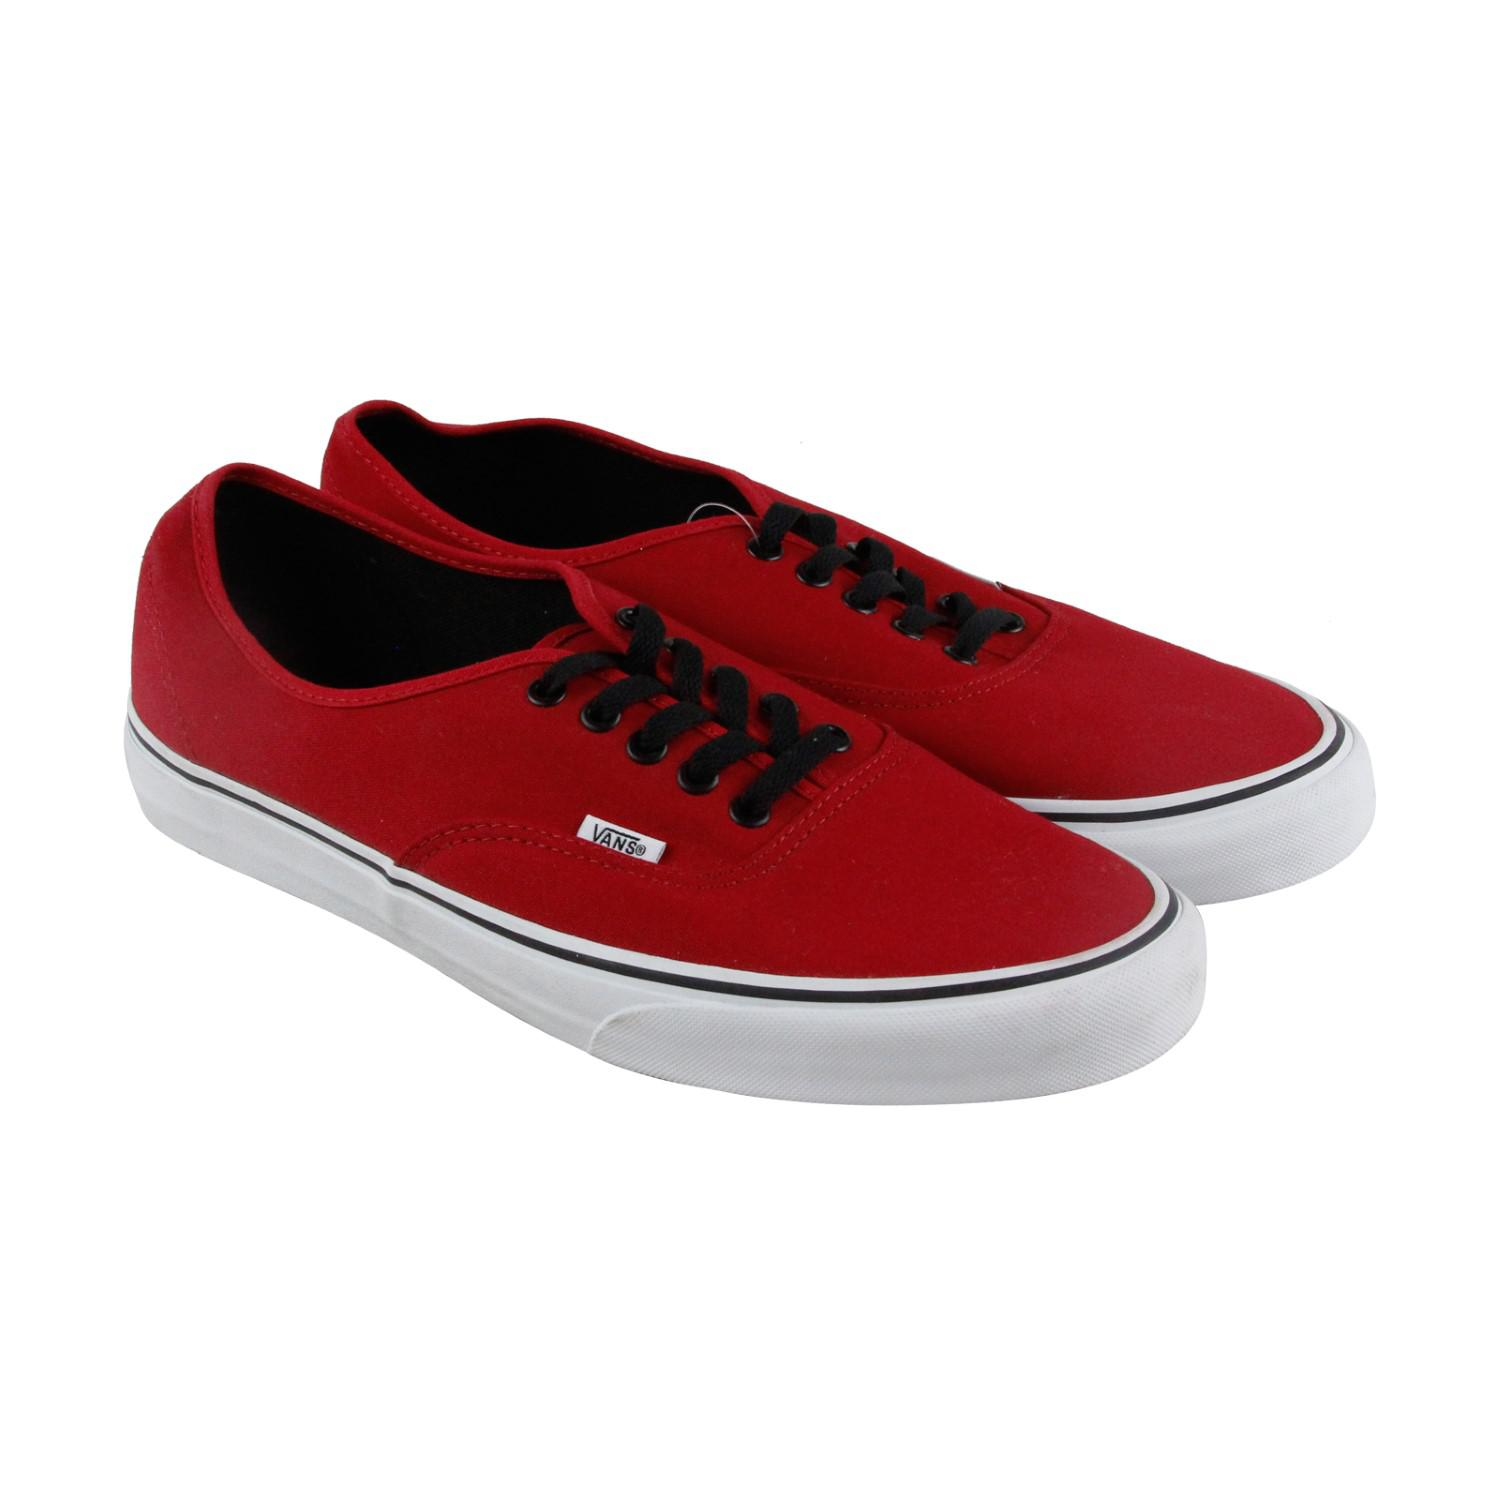 1a3e87b1d82 Lyst - Vans Authentic Chill Pepper Black Lace Up Sneakers in Red for Men